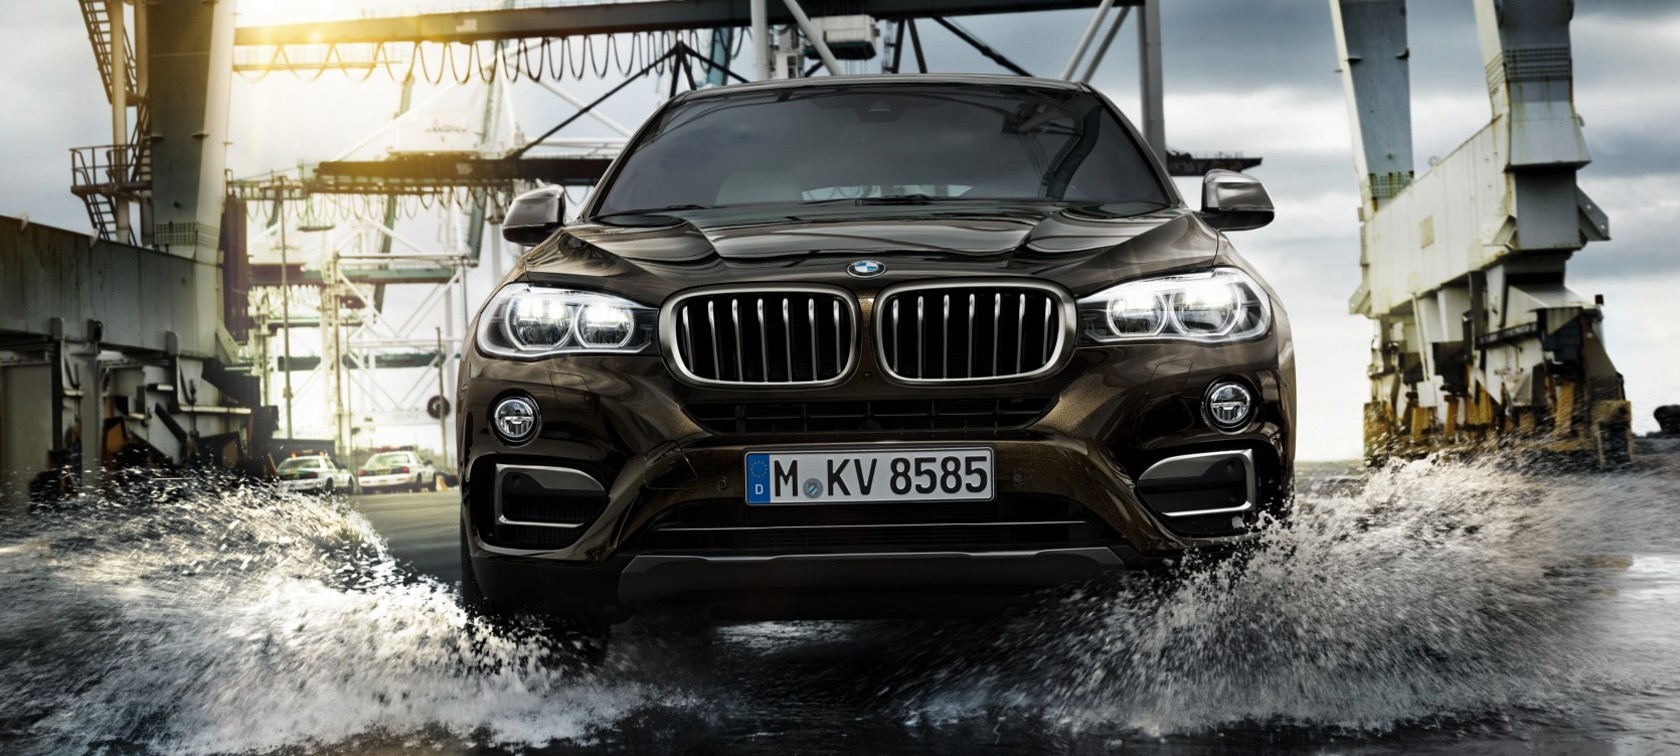 BMW-X6-cartec-group-s.jpg